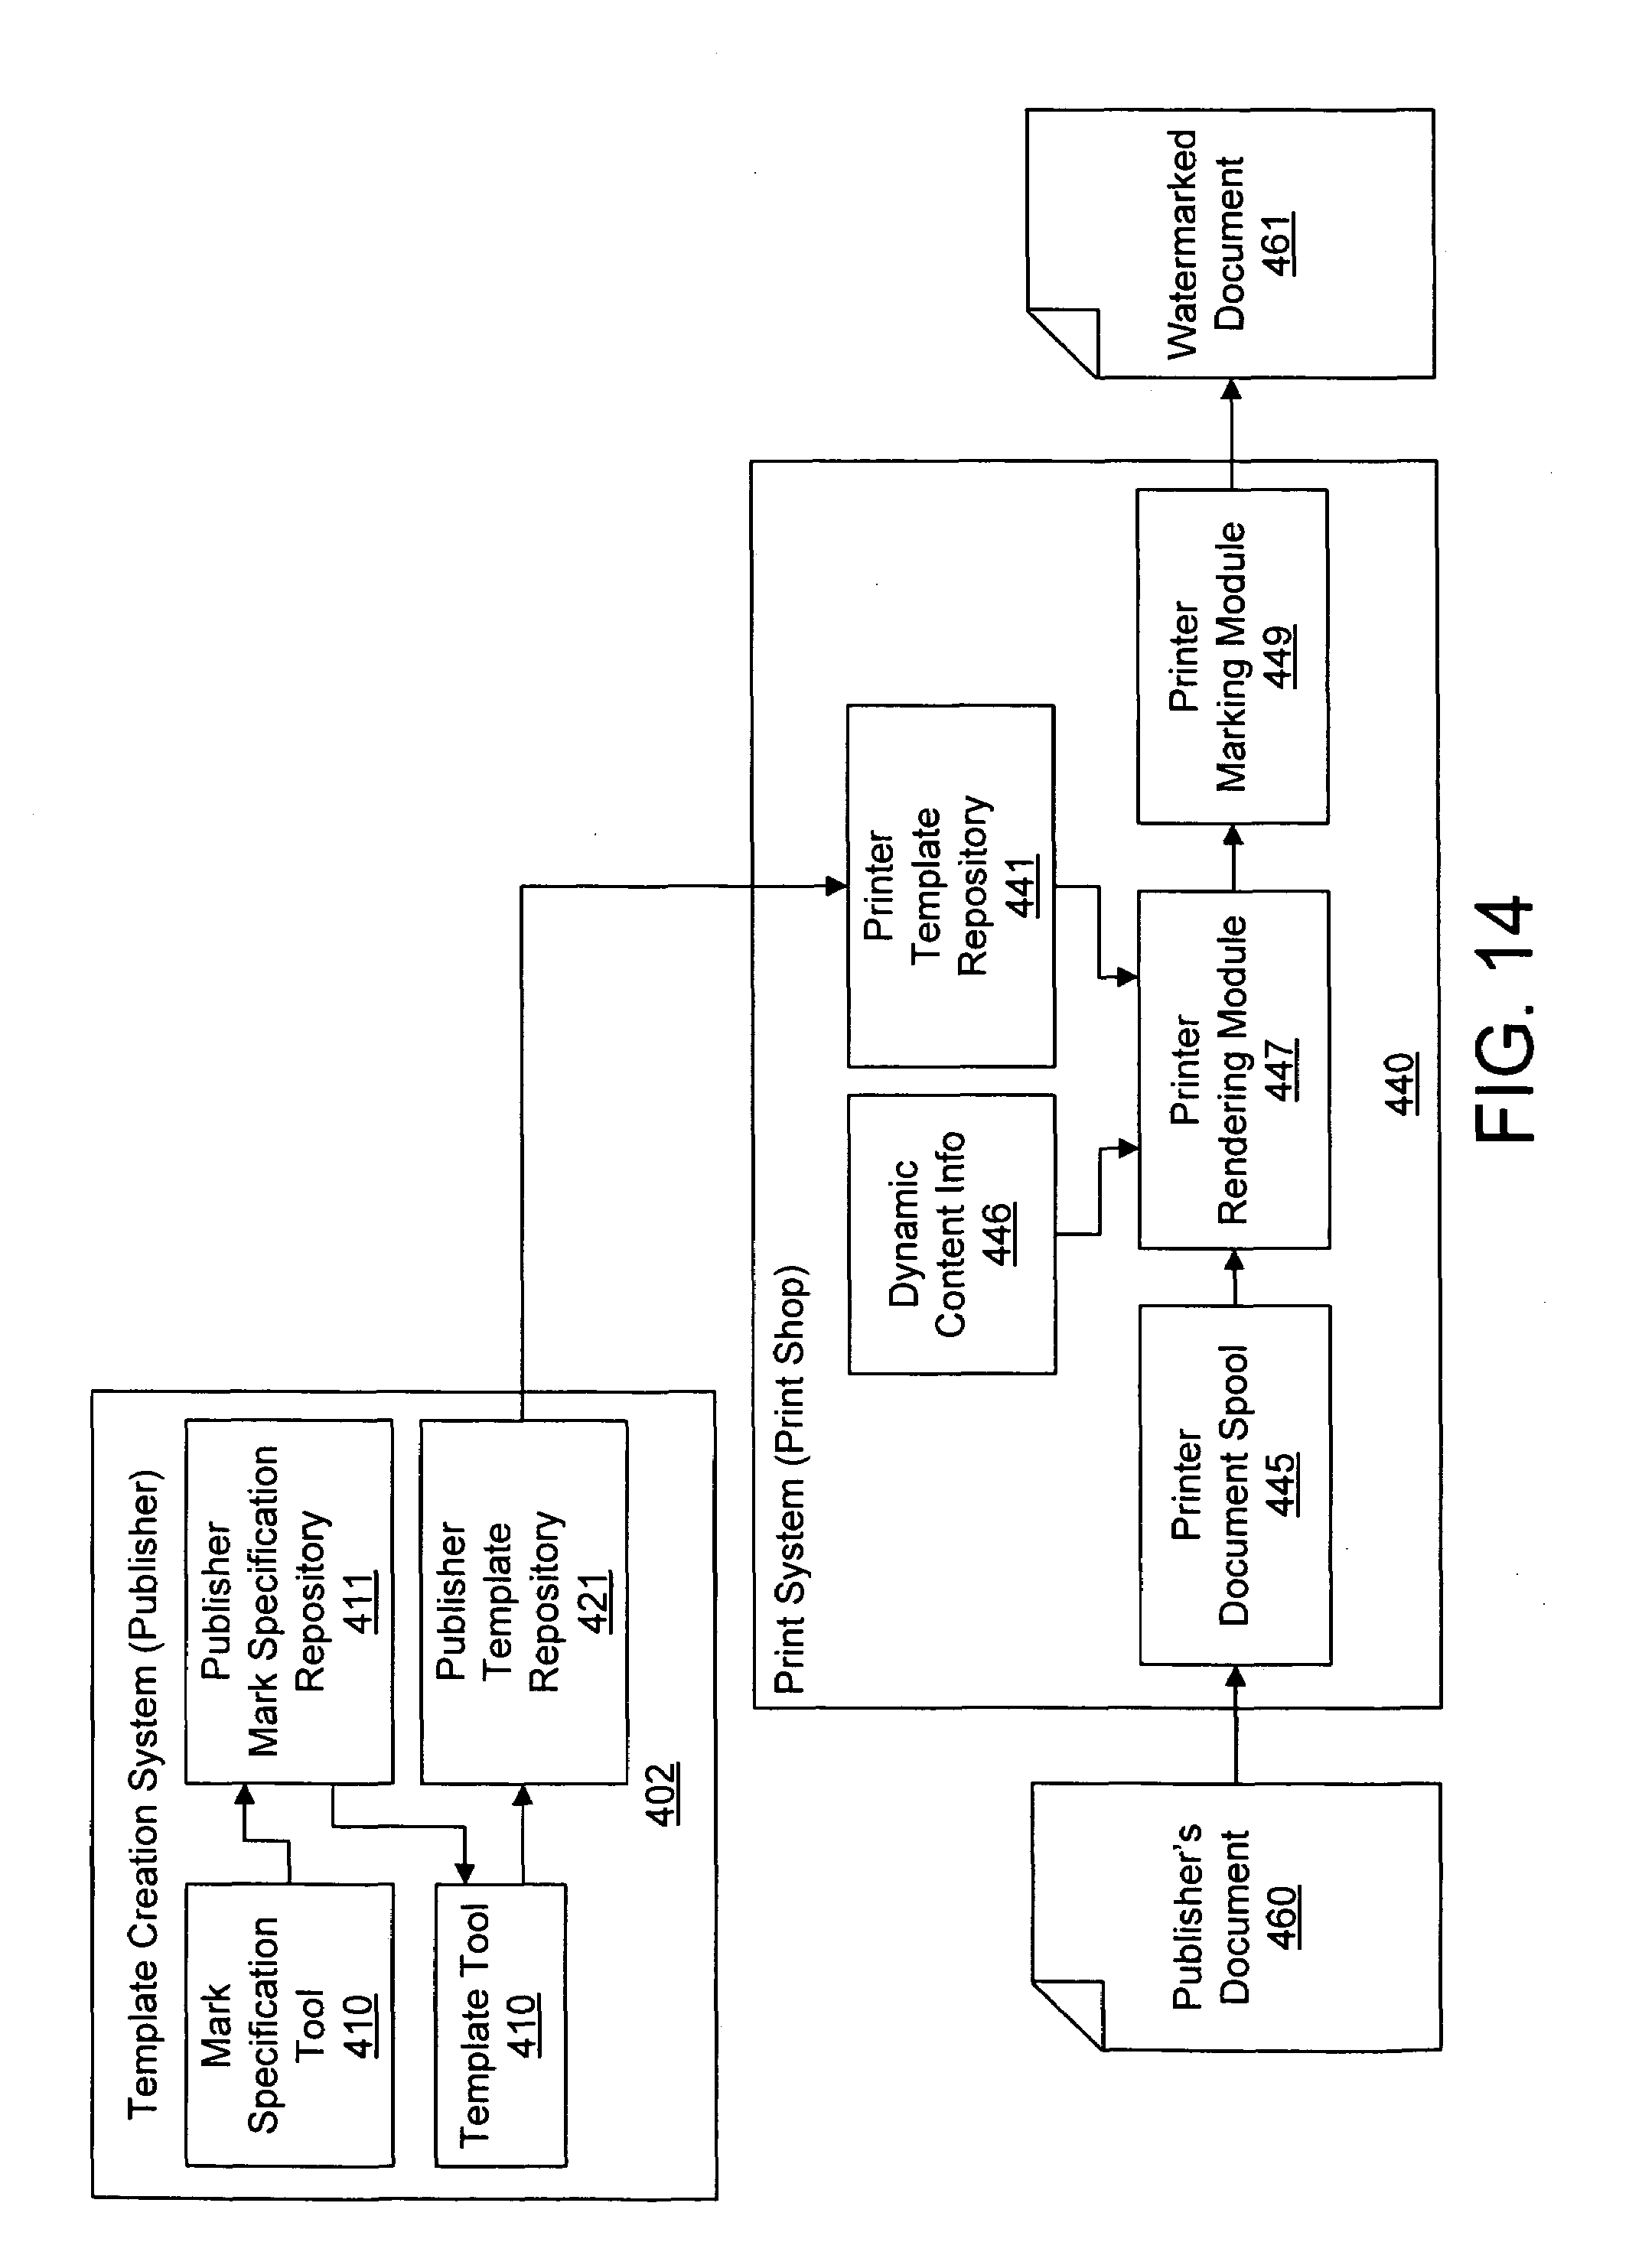 patent specification template - patent us7184571 multi stage watermarking process and